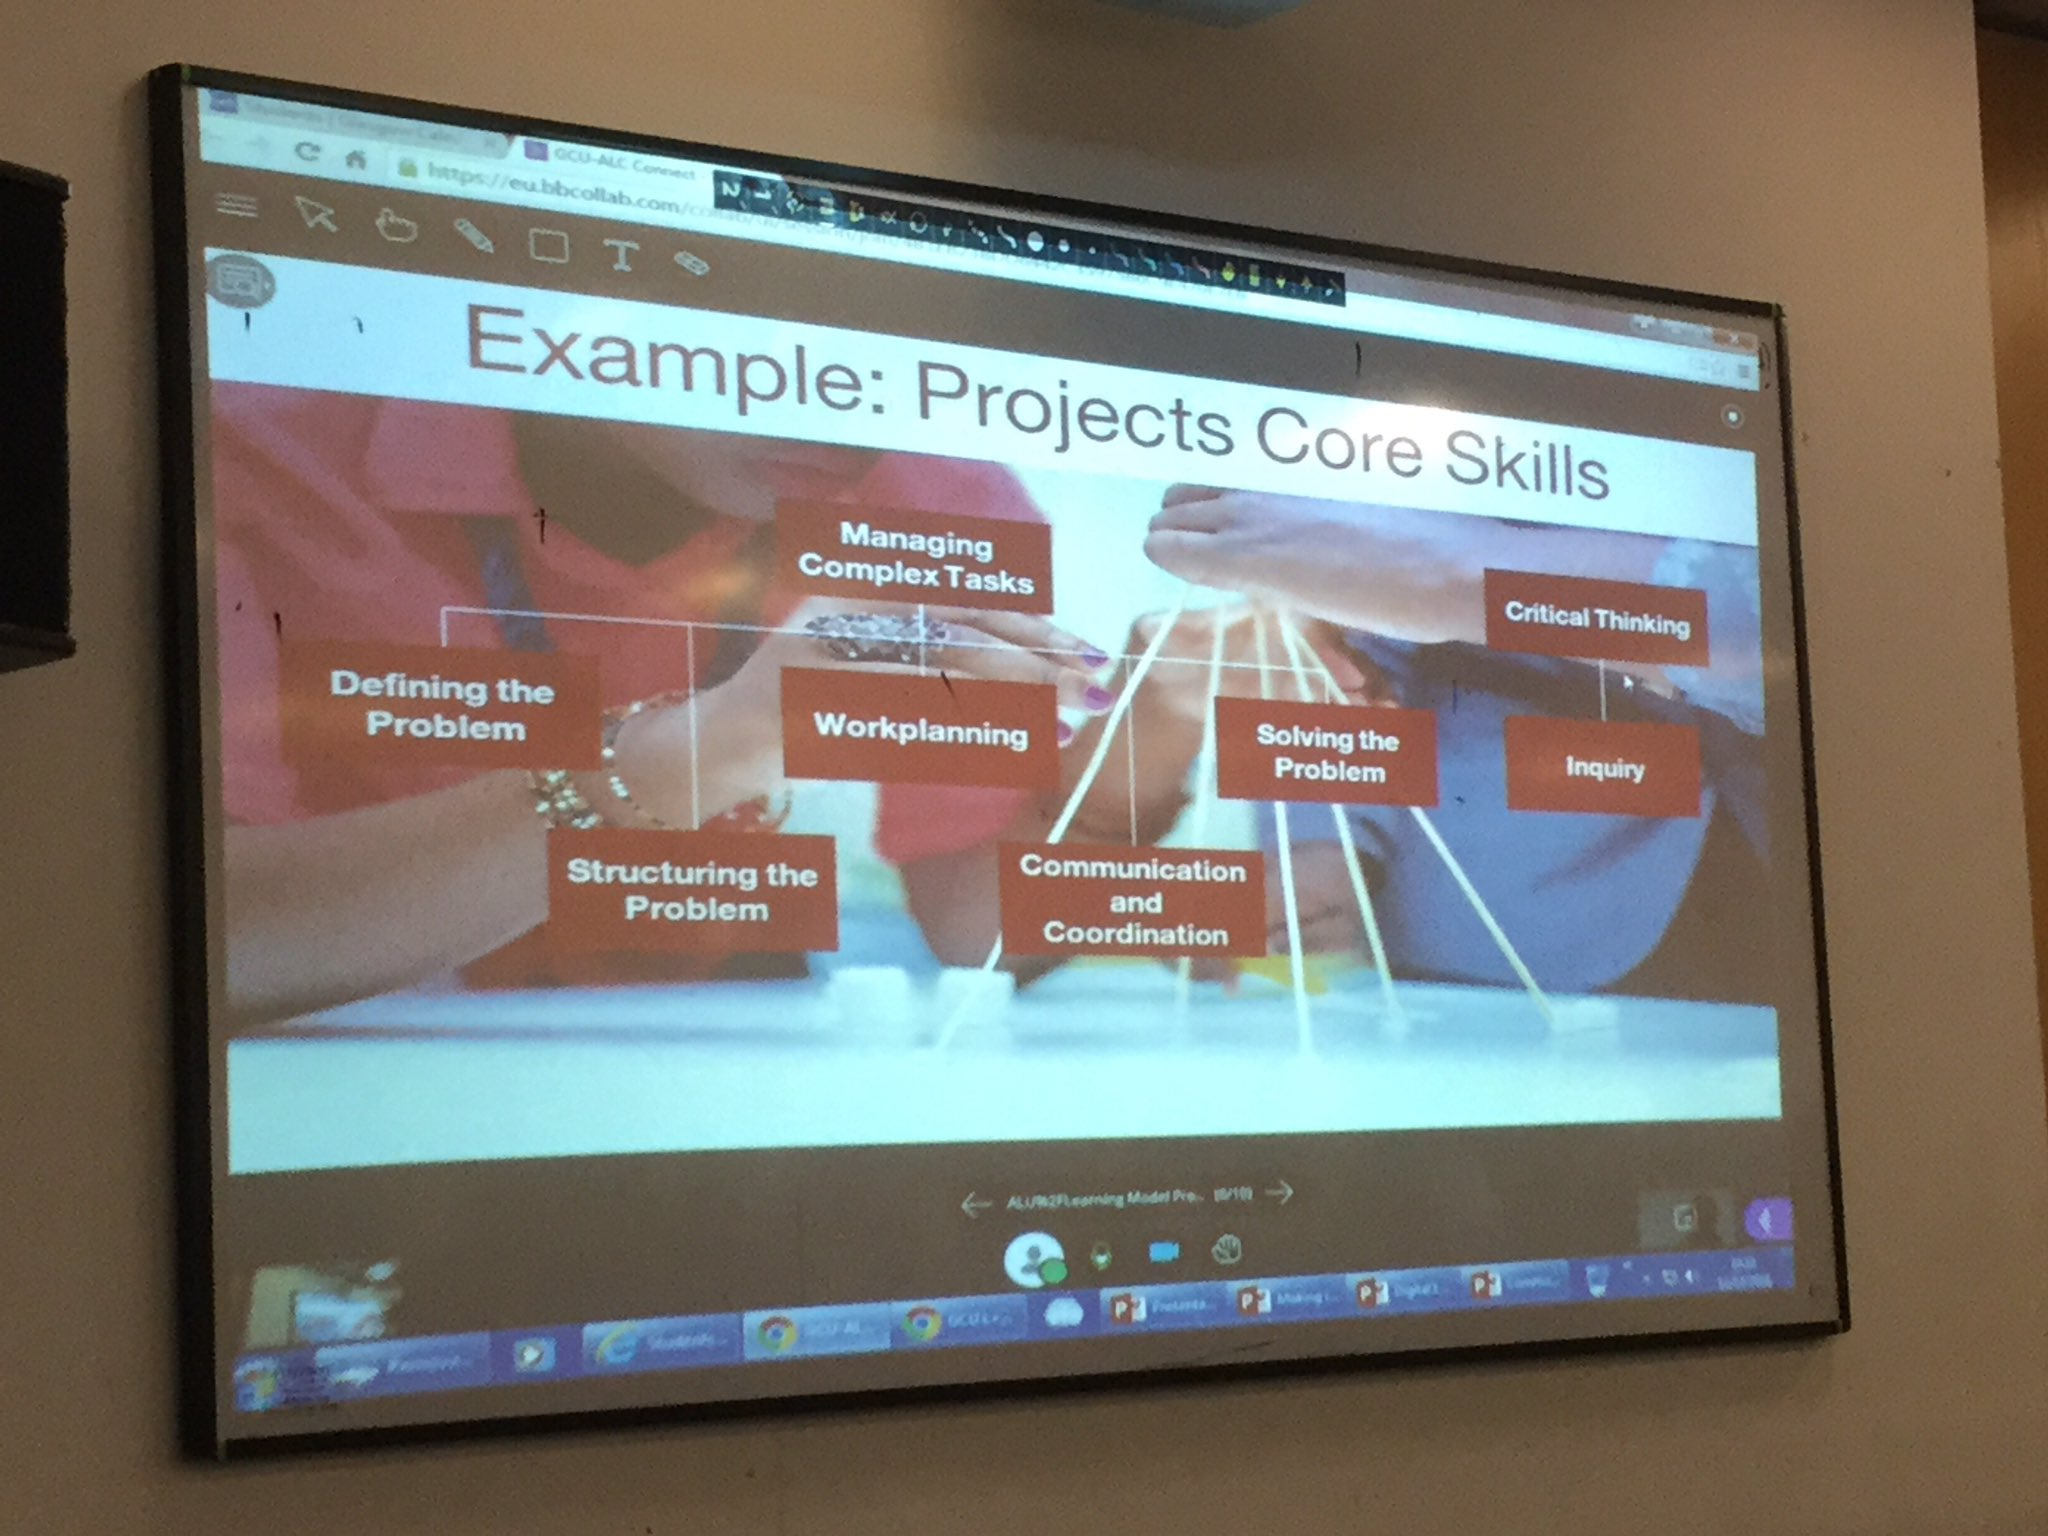 expanded view of project core skills #LTGCU https://t.co/F0HIOWJtmo